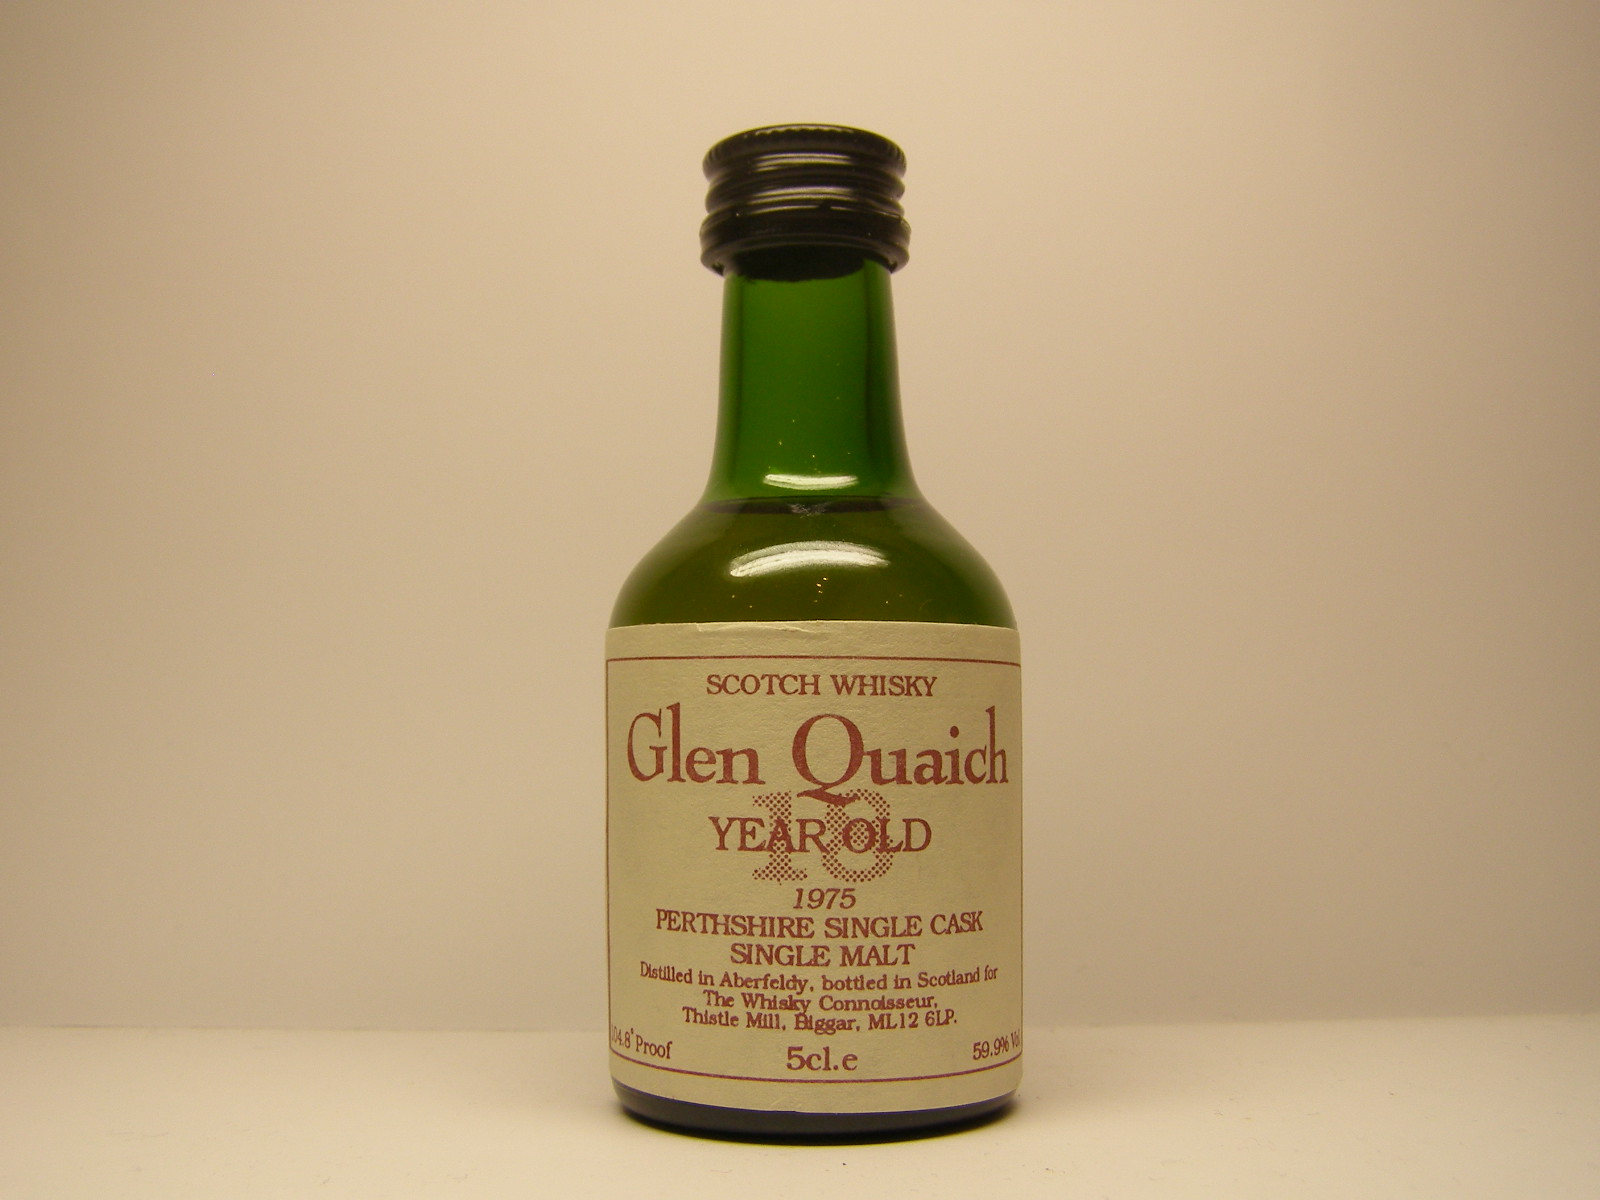 GLEN QUAICH PSCSMSW 18yo 1975 5cl.e 104,8´Proof 59,9%Vol.